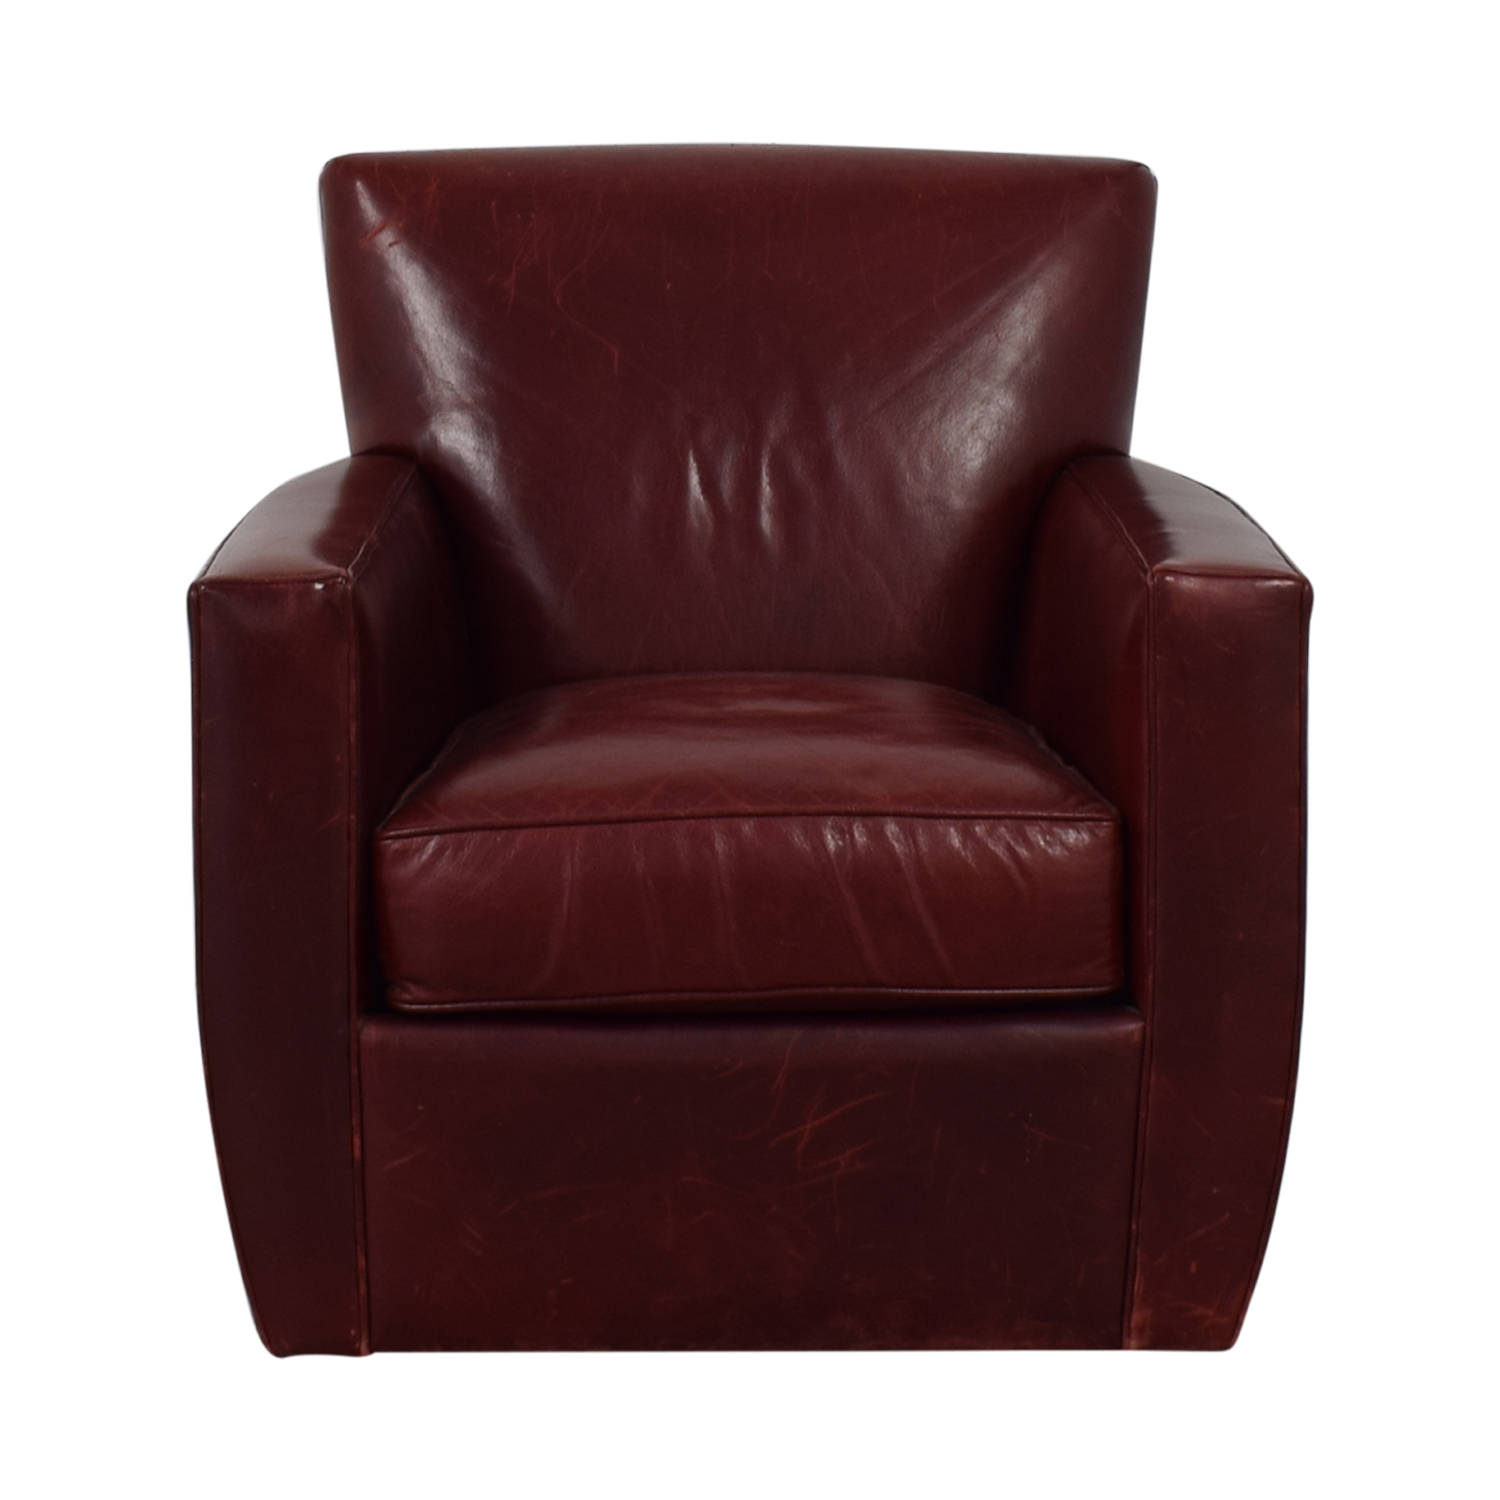 Crate & Barrel Crate & Barrel Swivel Red Accent Chair used